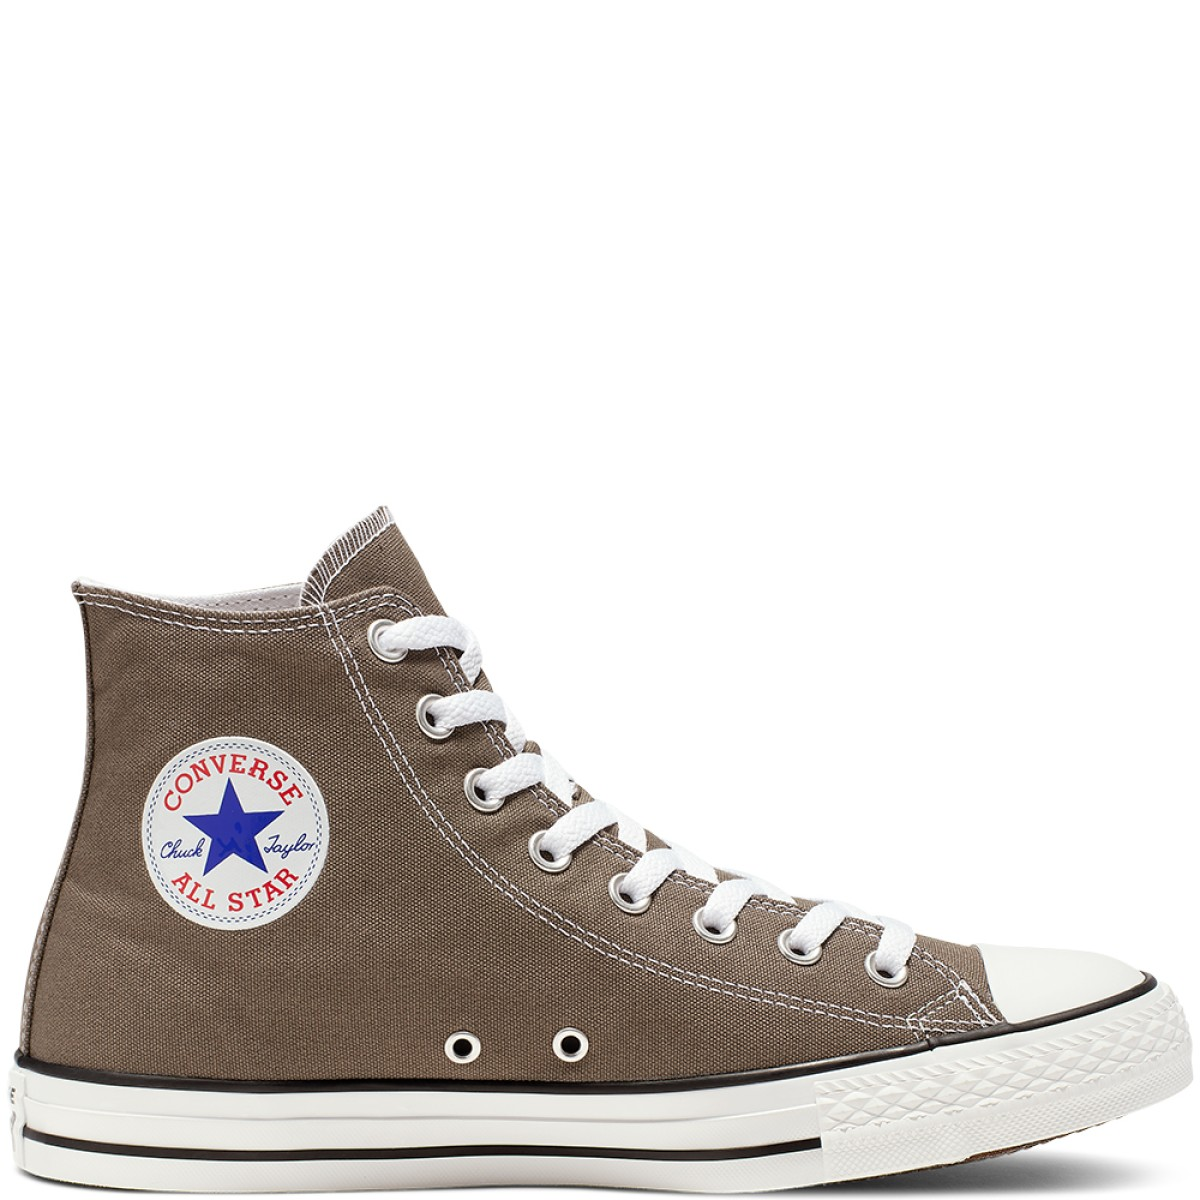 Chuck Taylor All Star and One Star